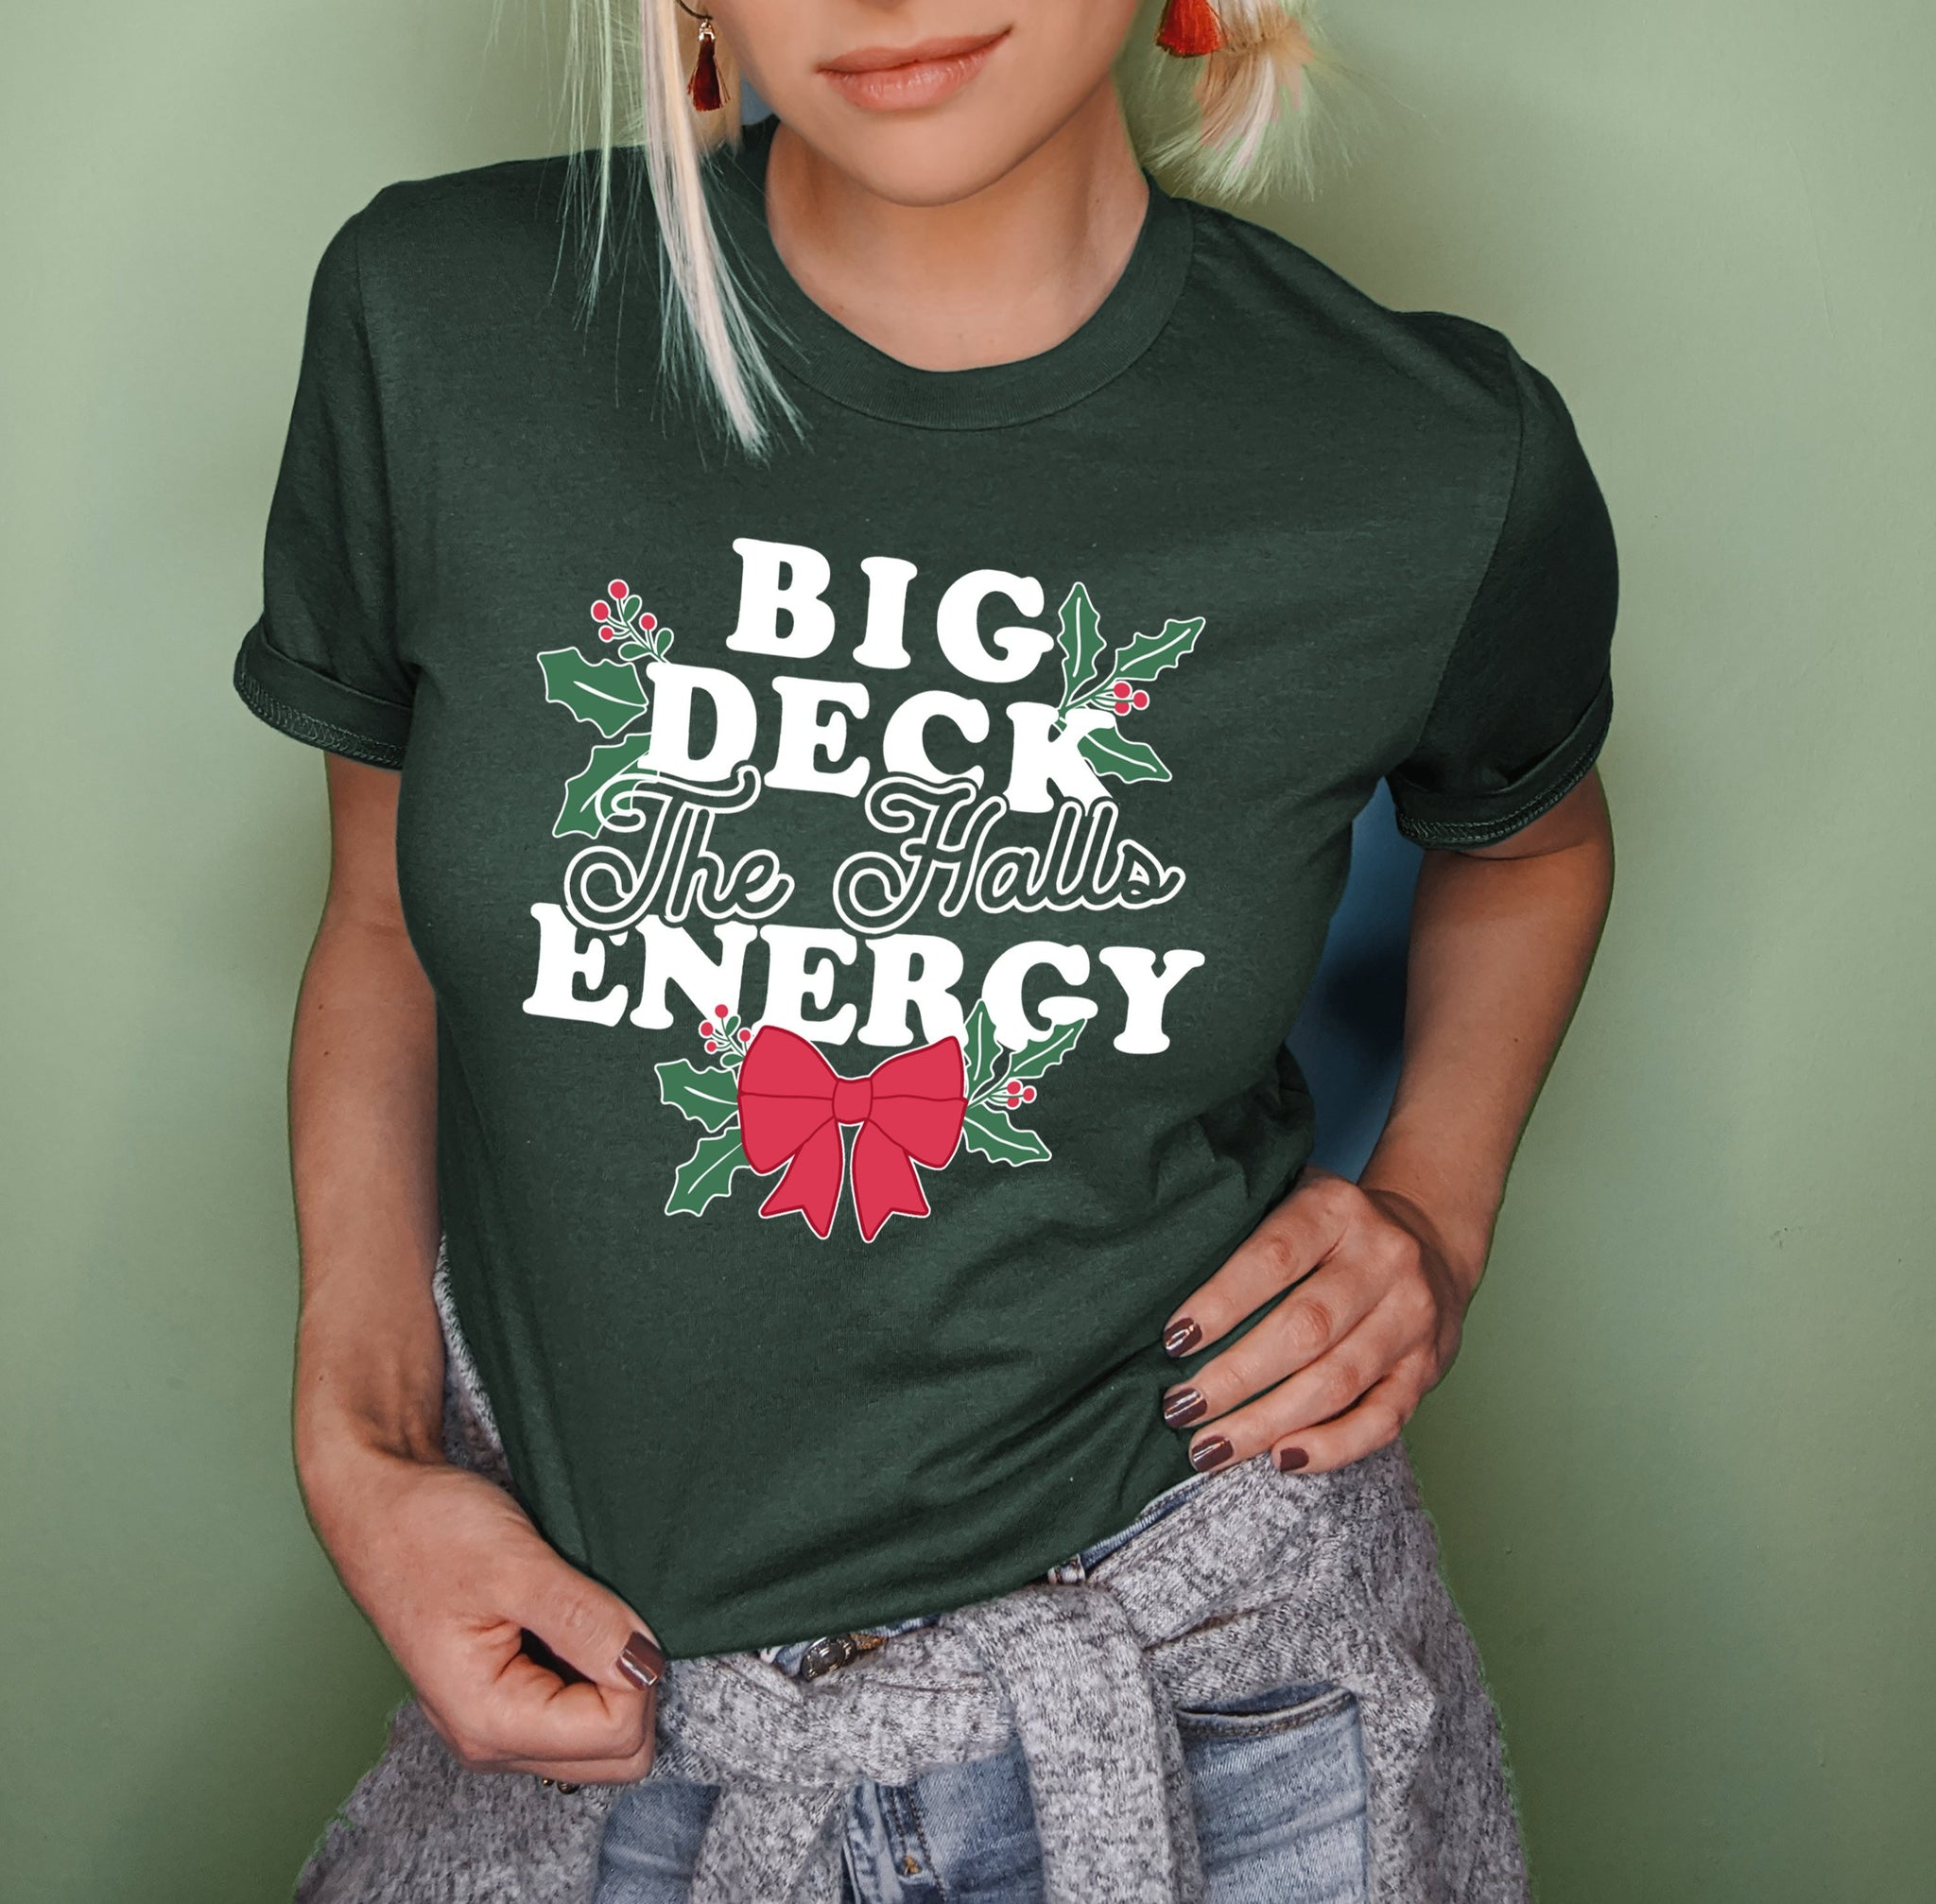 Forest shirt saying big deck the halls energy - HighCiti